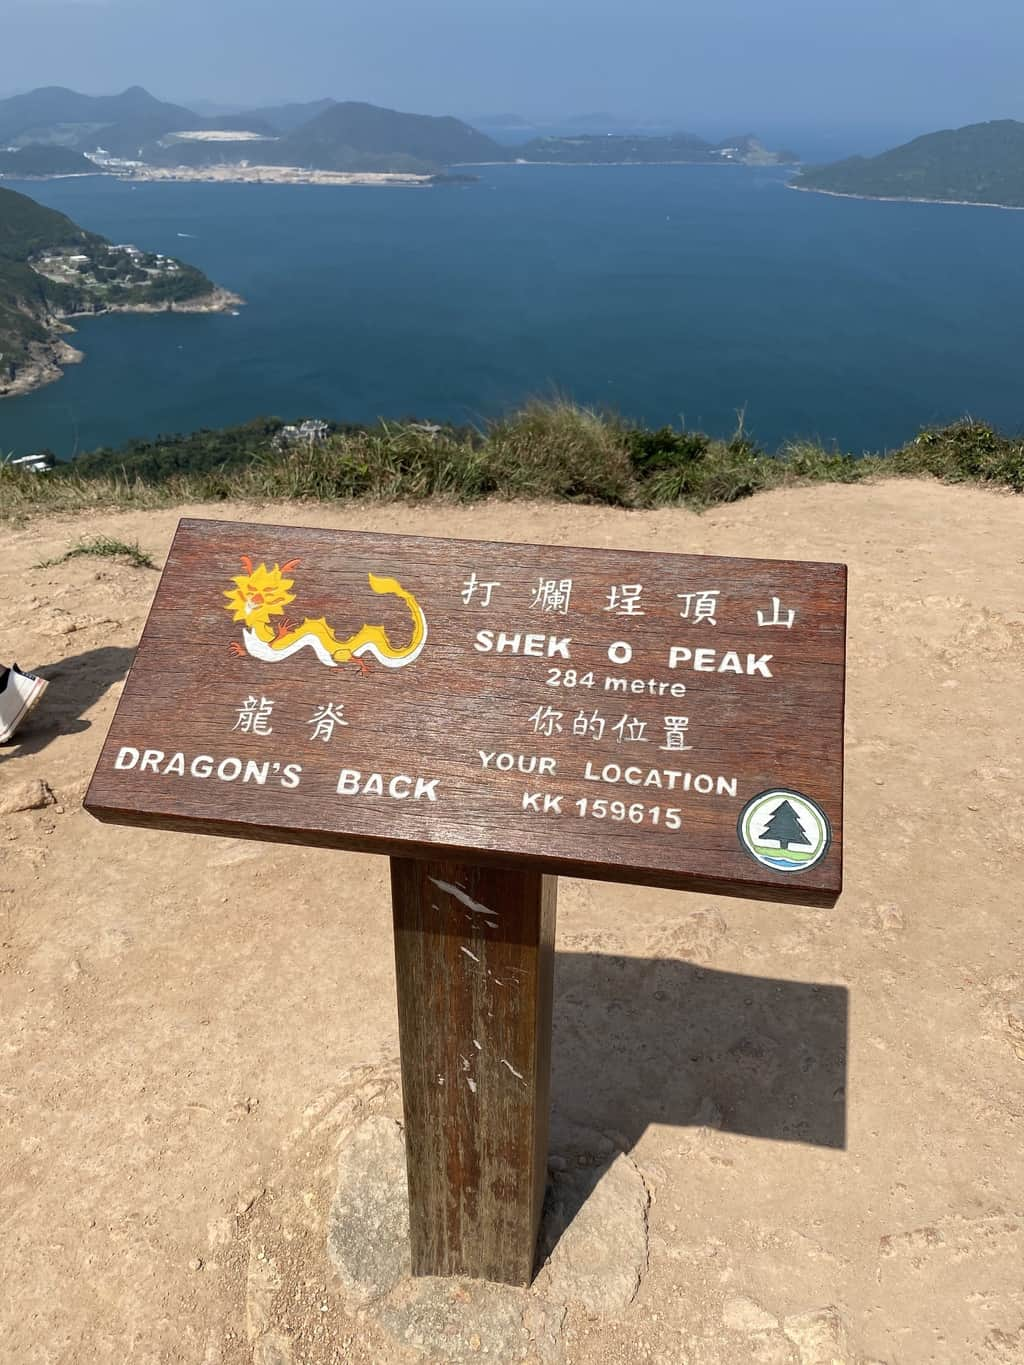 Peak of the Dragon's Back Trail